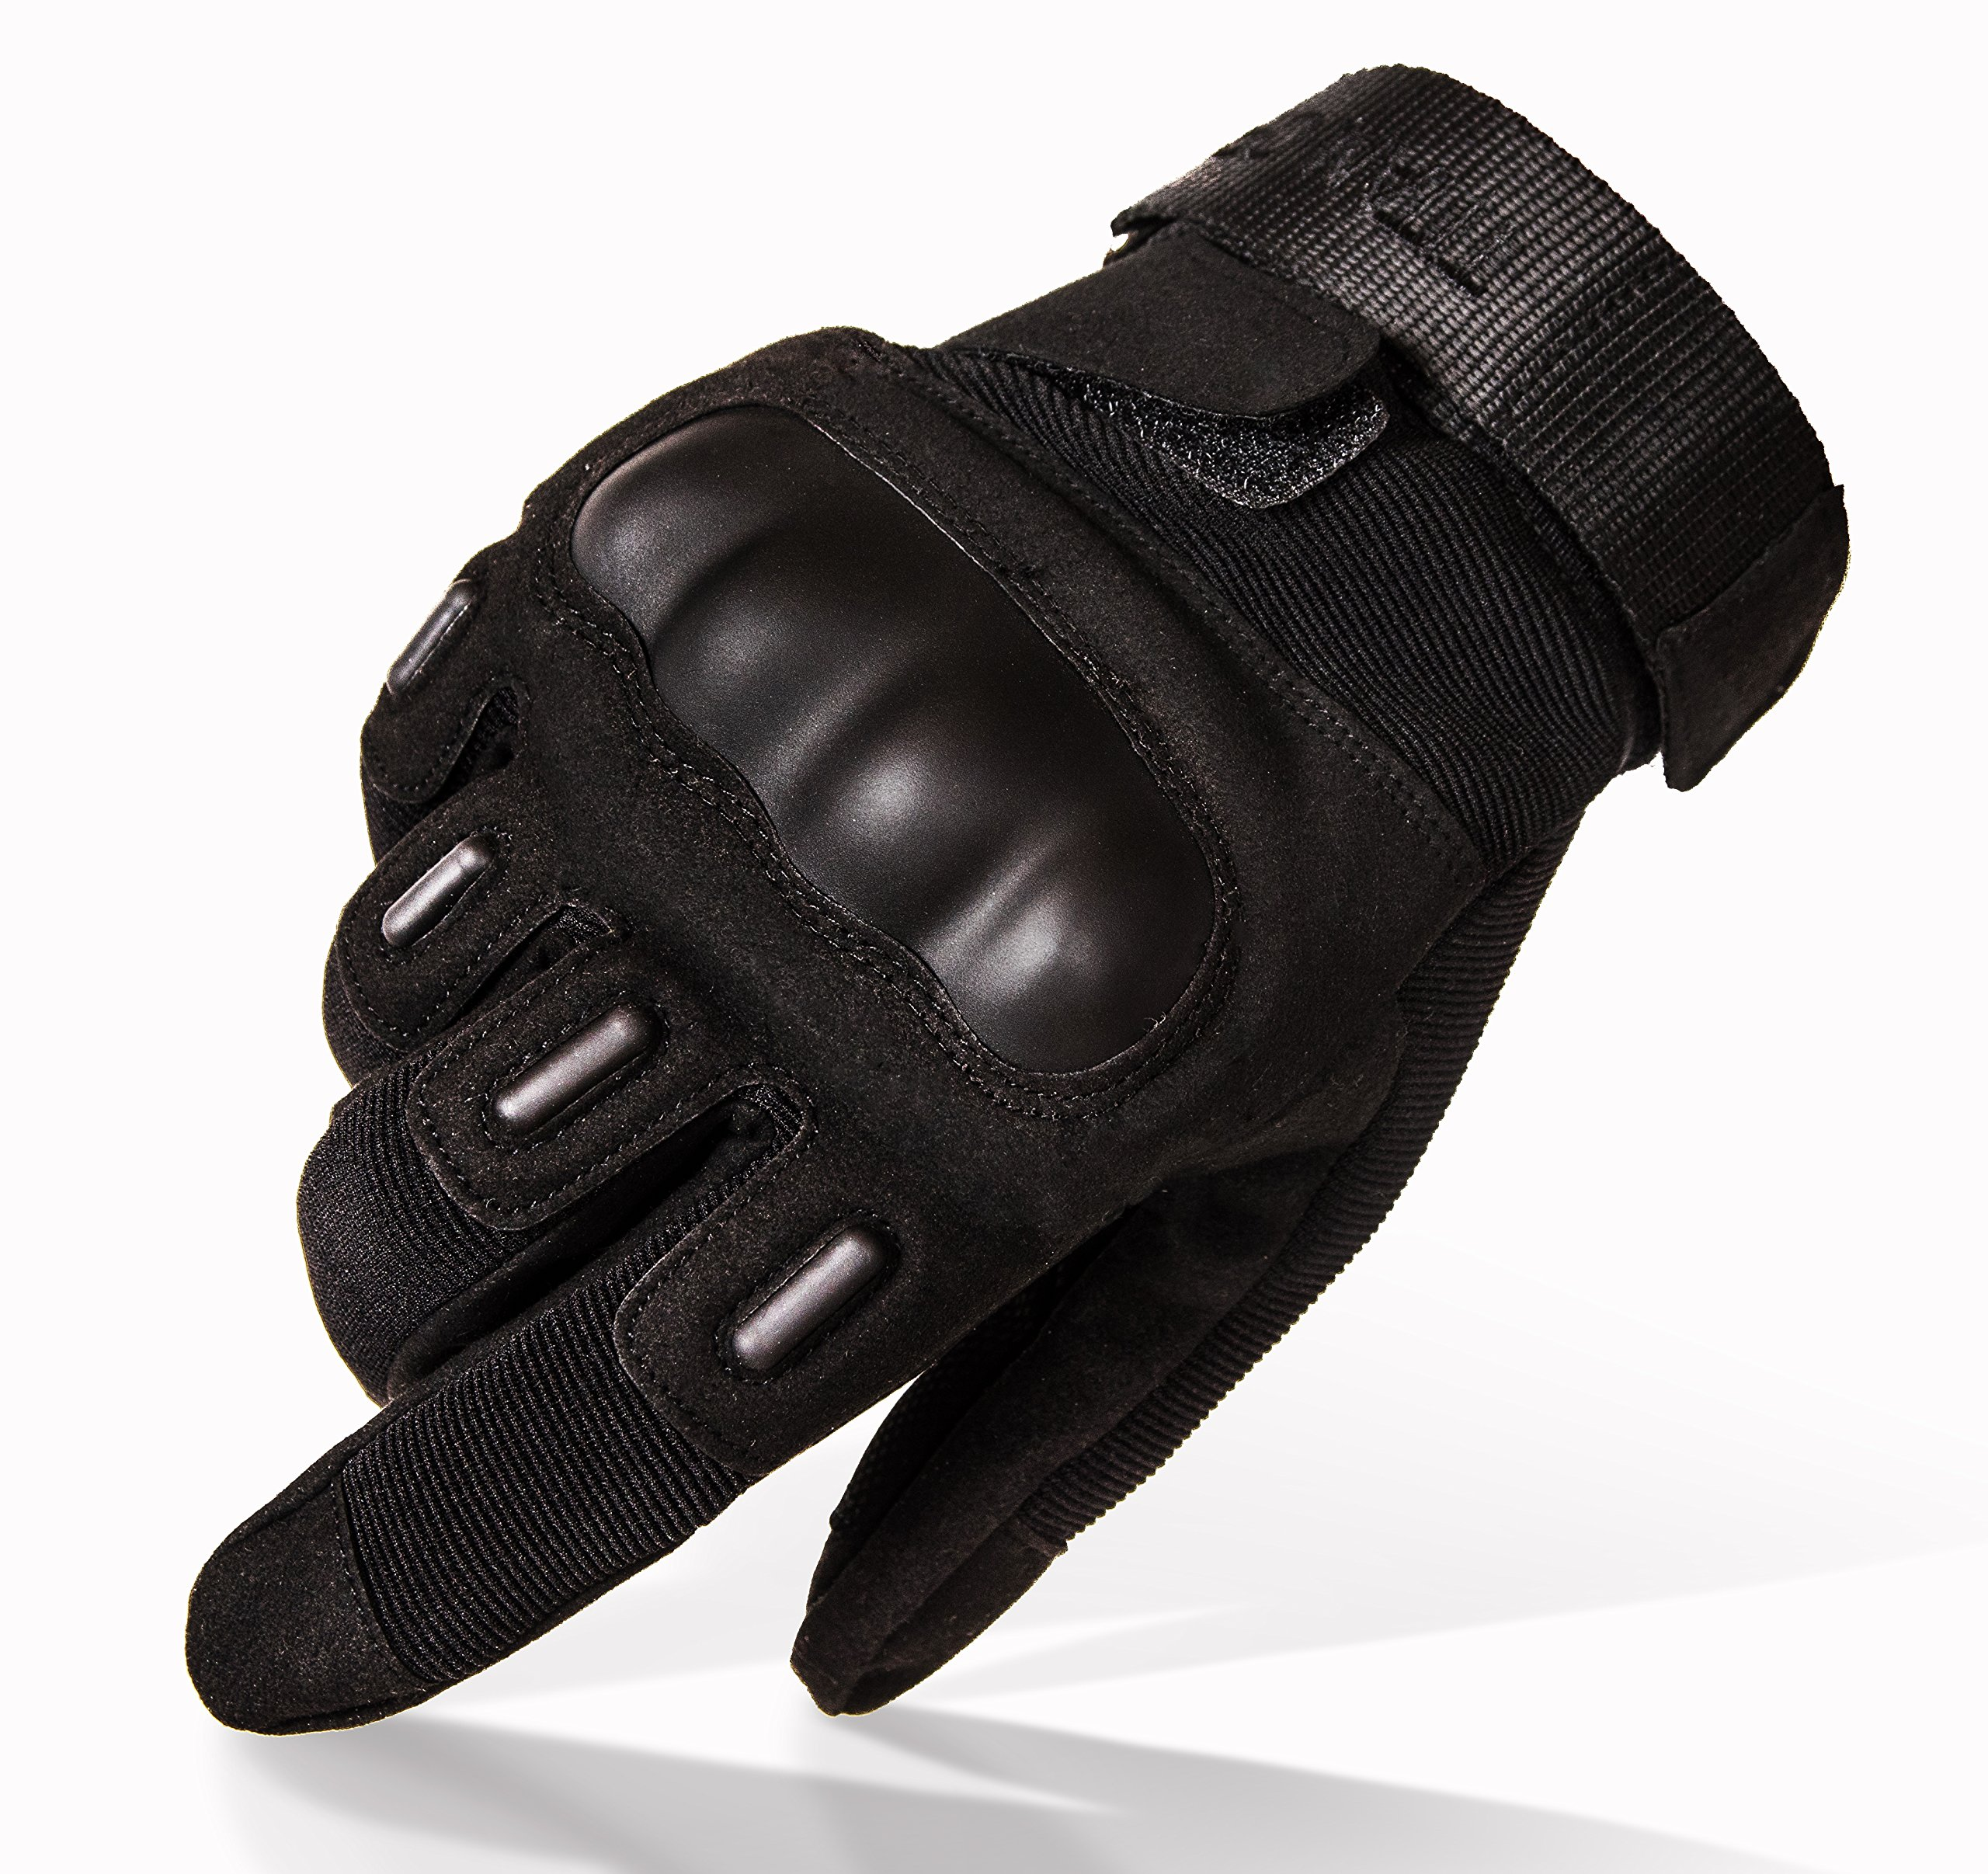 TitanOPS Full Finger Hard Knuckle Motorcycle Military Tactical Combat Training Army Shooting Outdoor Gloves (Black, XL)